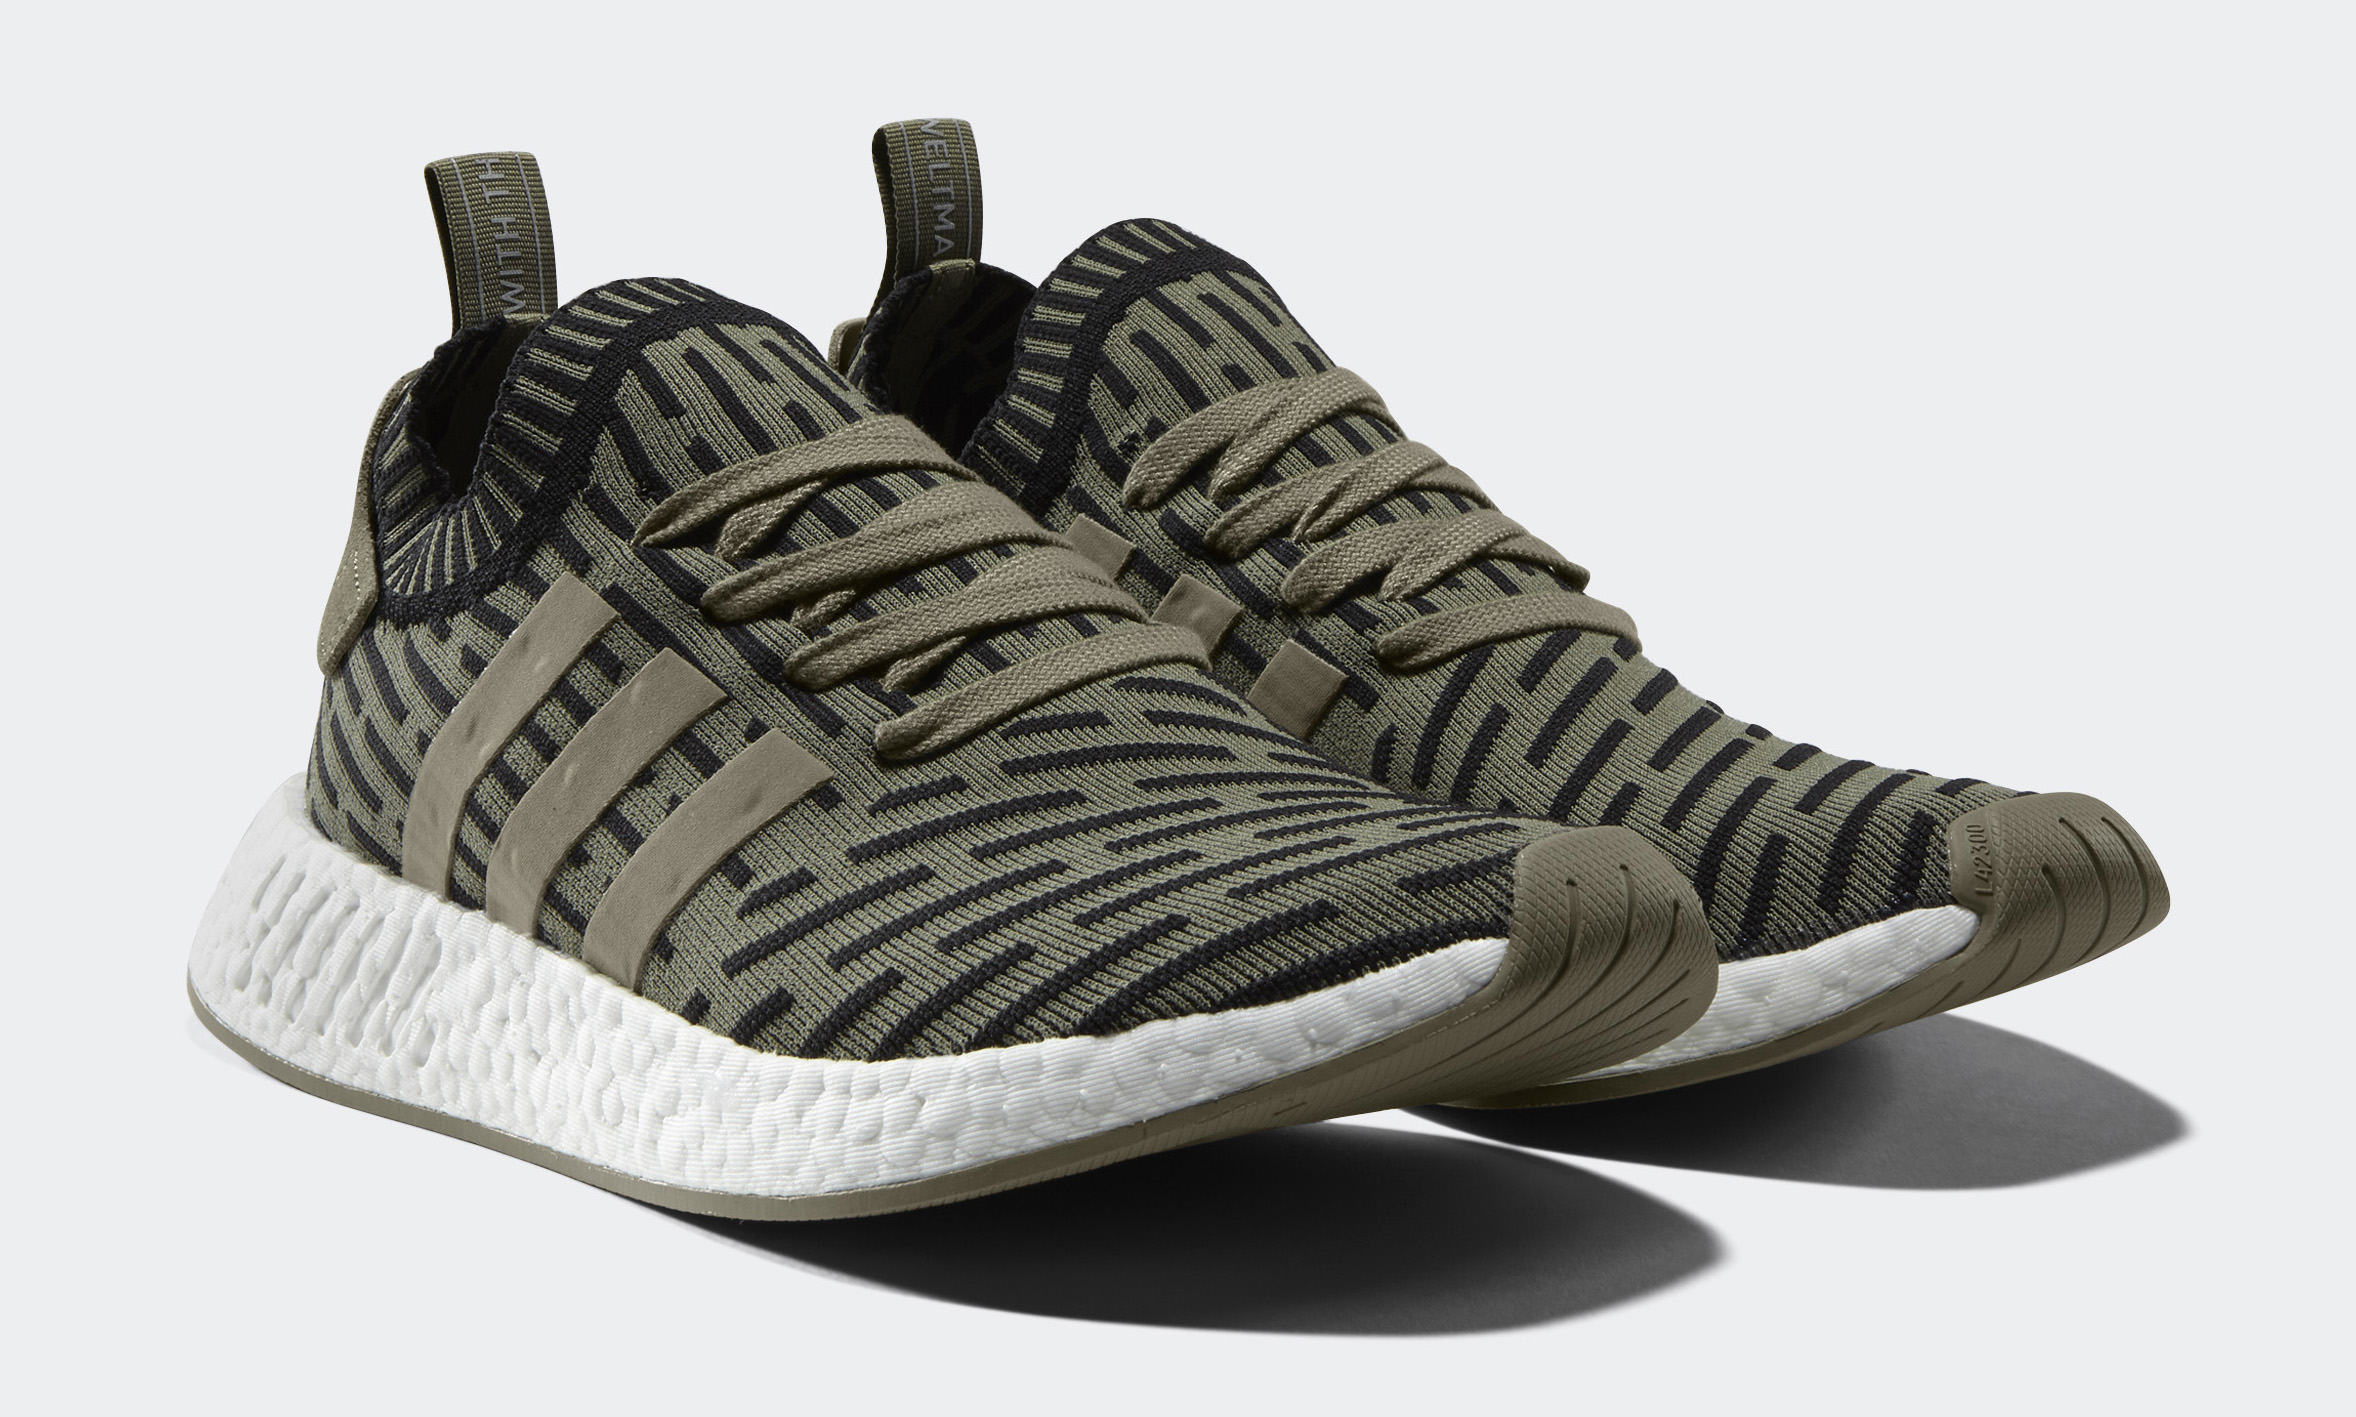 new arrival 0483b add84 Adidas NMD R2 Release Date | Sole Collector